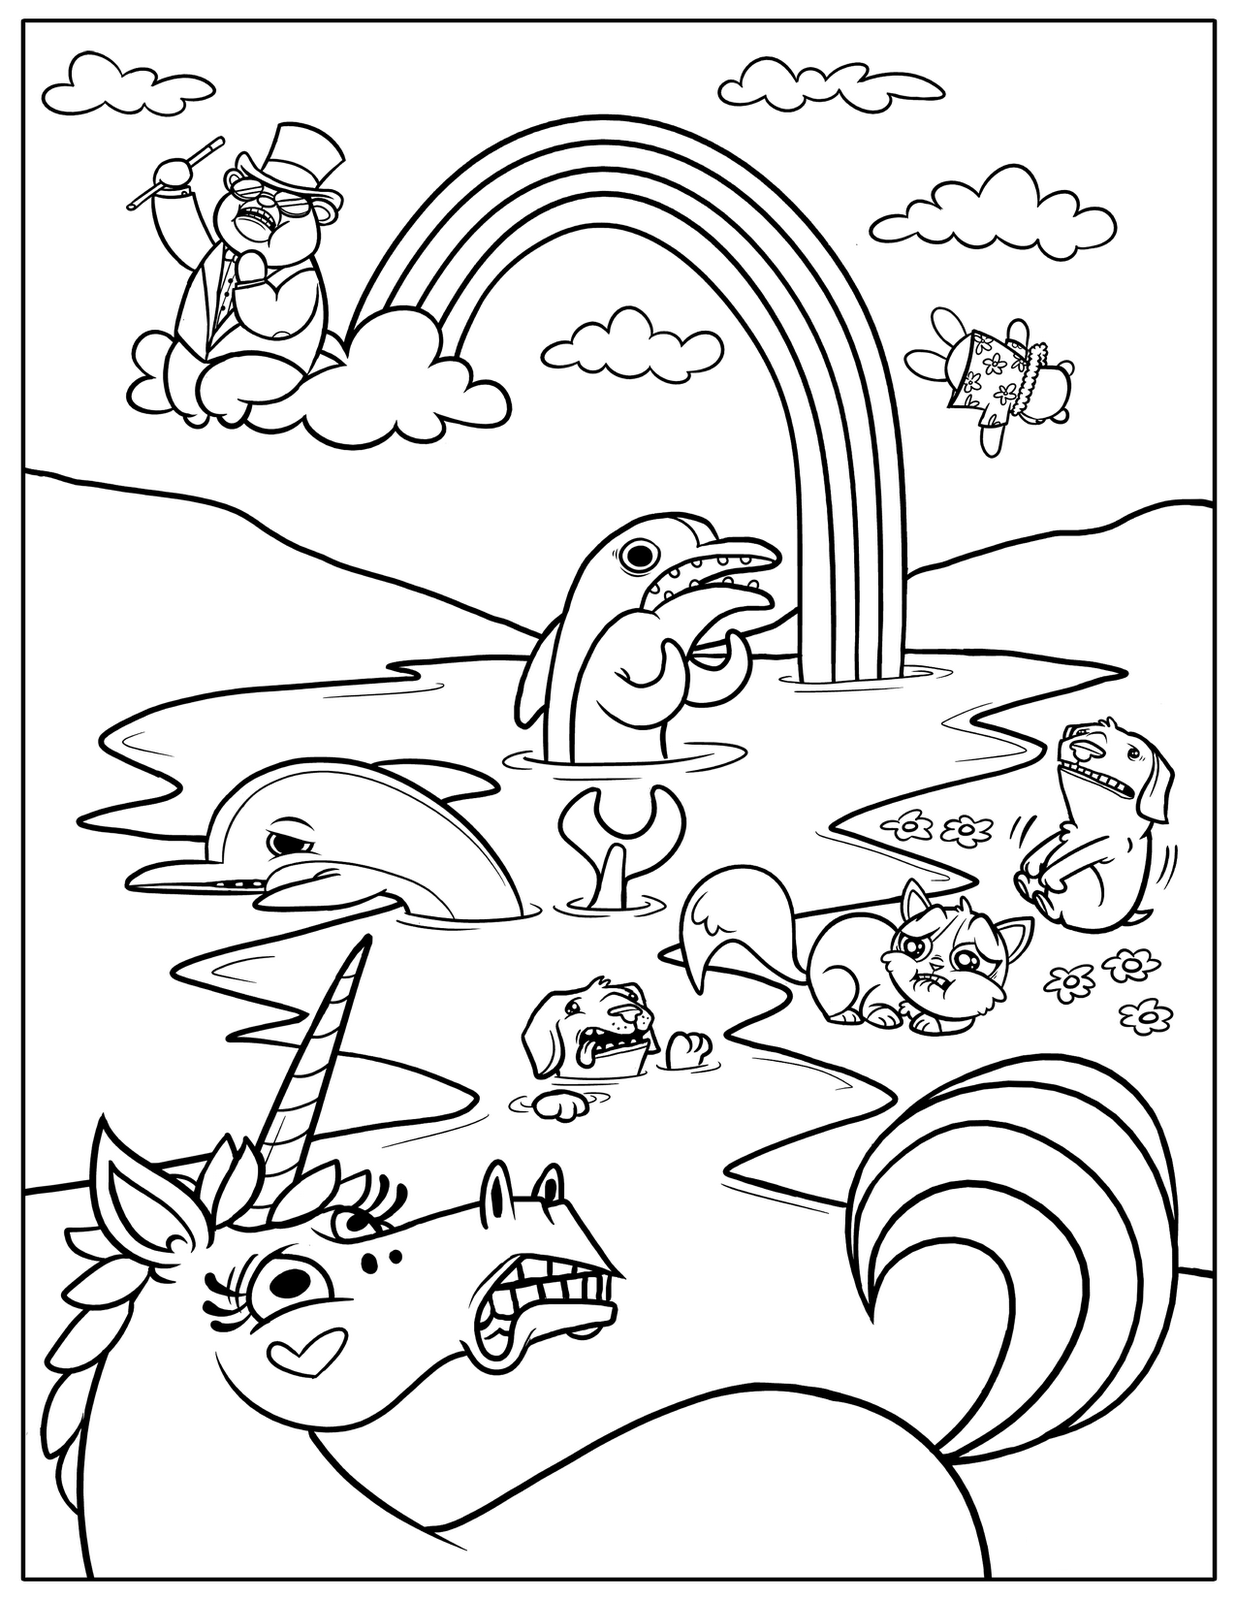 Free printable rainbow coloring pages for kids for Coloring pages